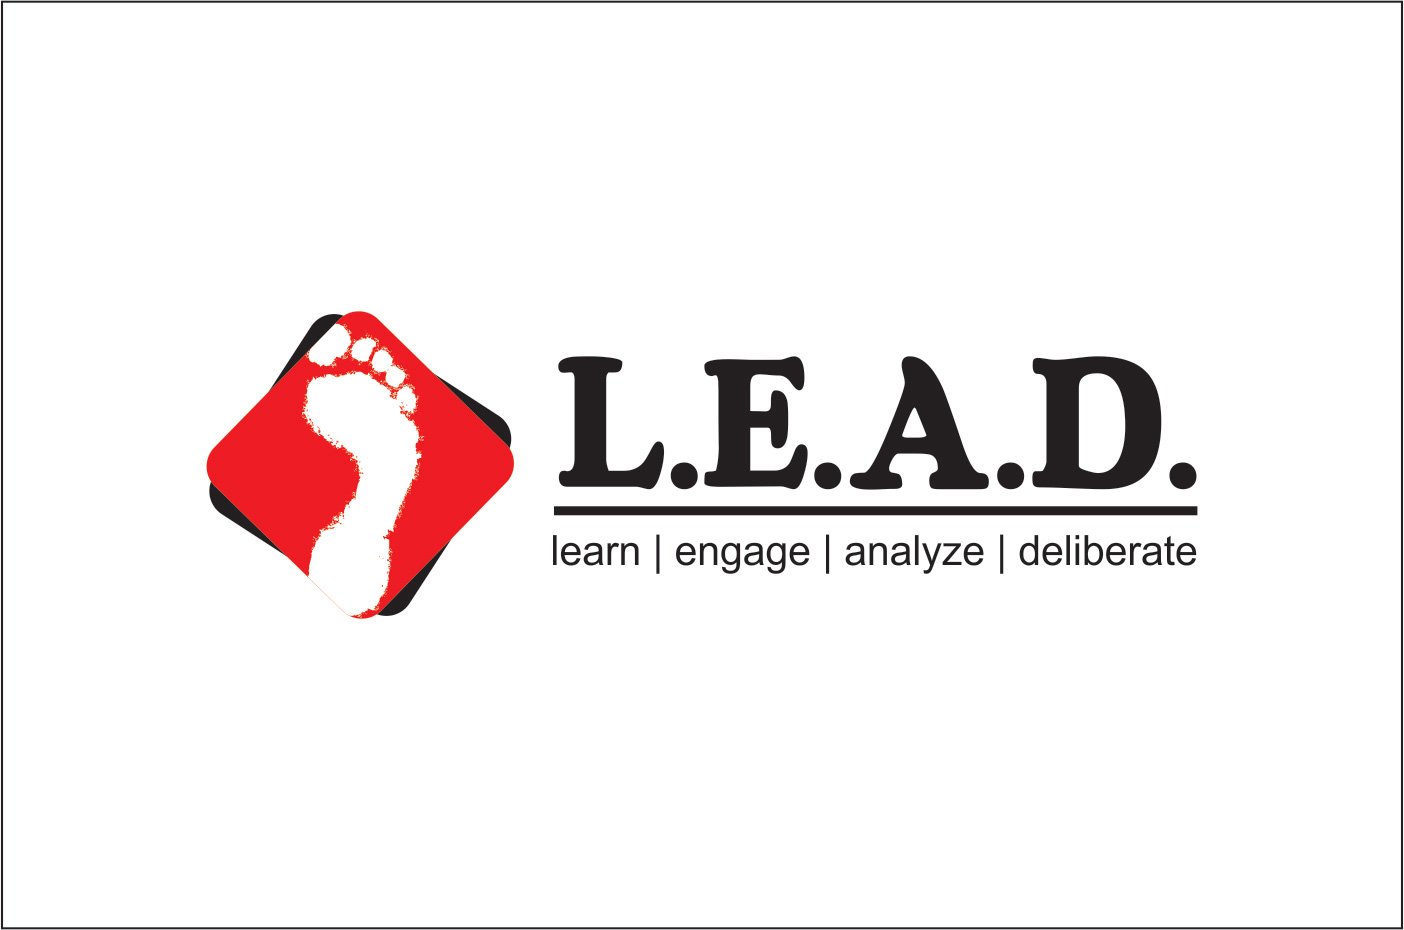 Logo Design by Rai - Entry No. 40 in the Logo Design Contest L.E.A.D. (learn, engage, analyze, deliberate) Logo Design.